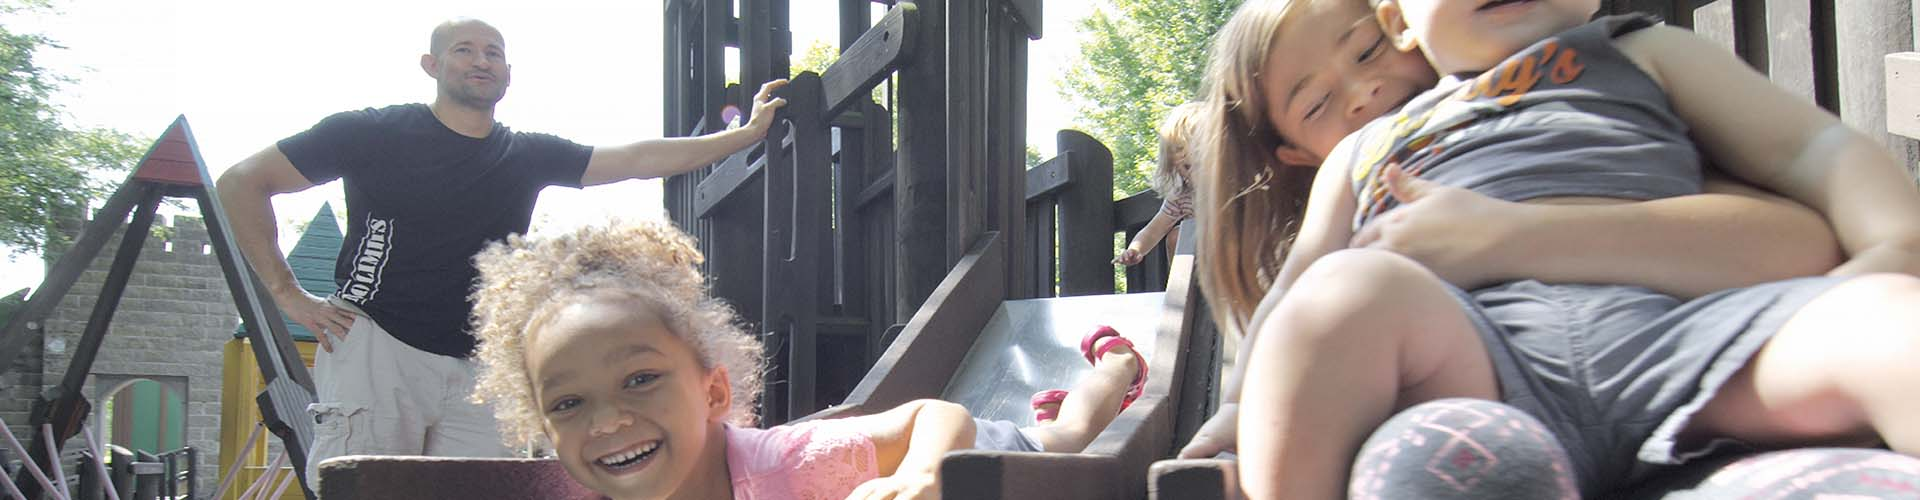 Family Fun & Activities Janesville Wisconsin